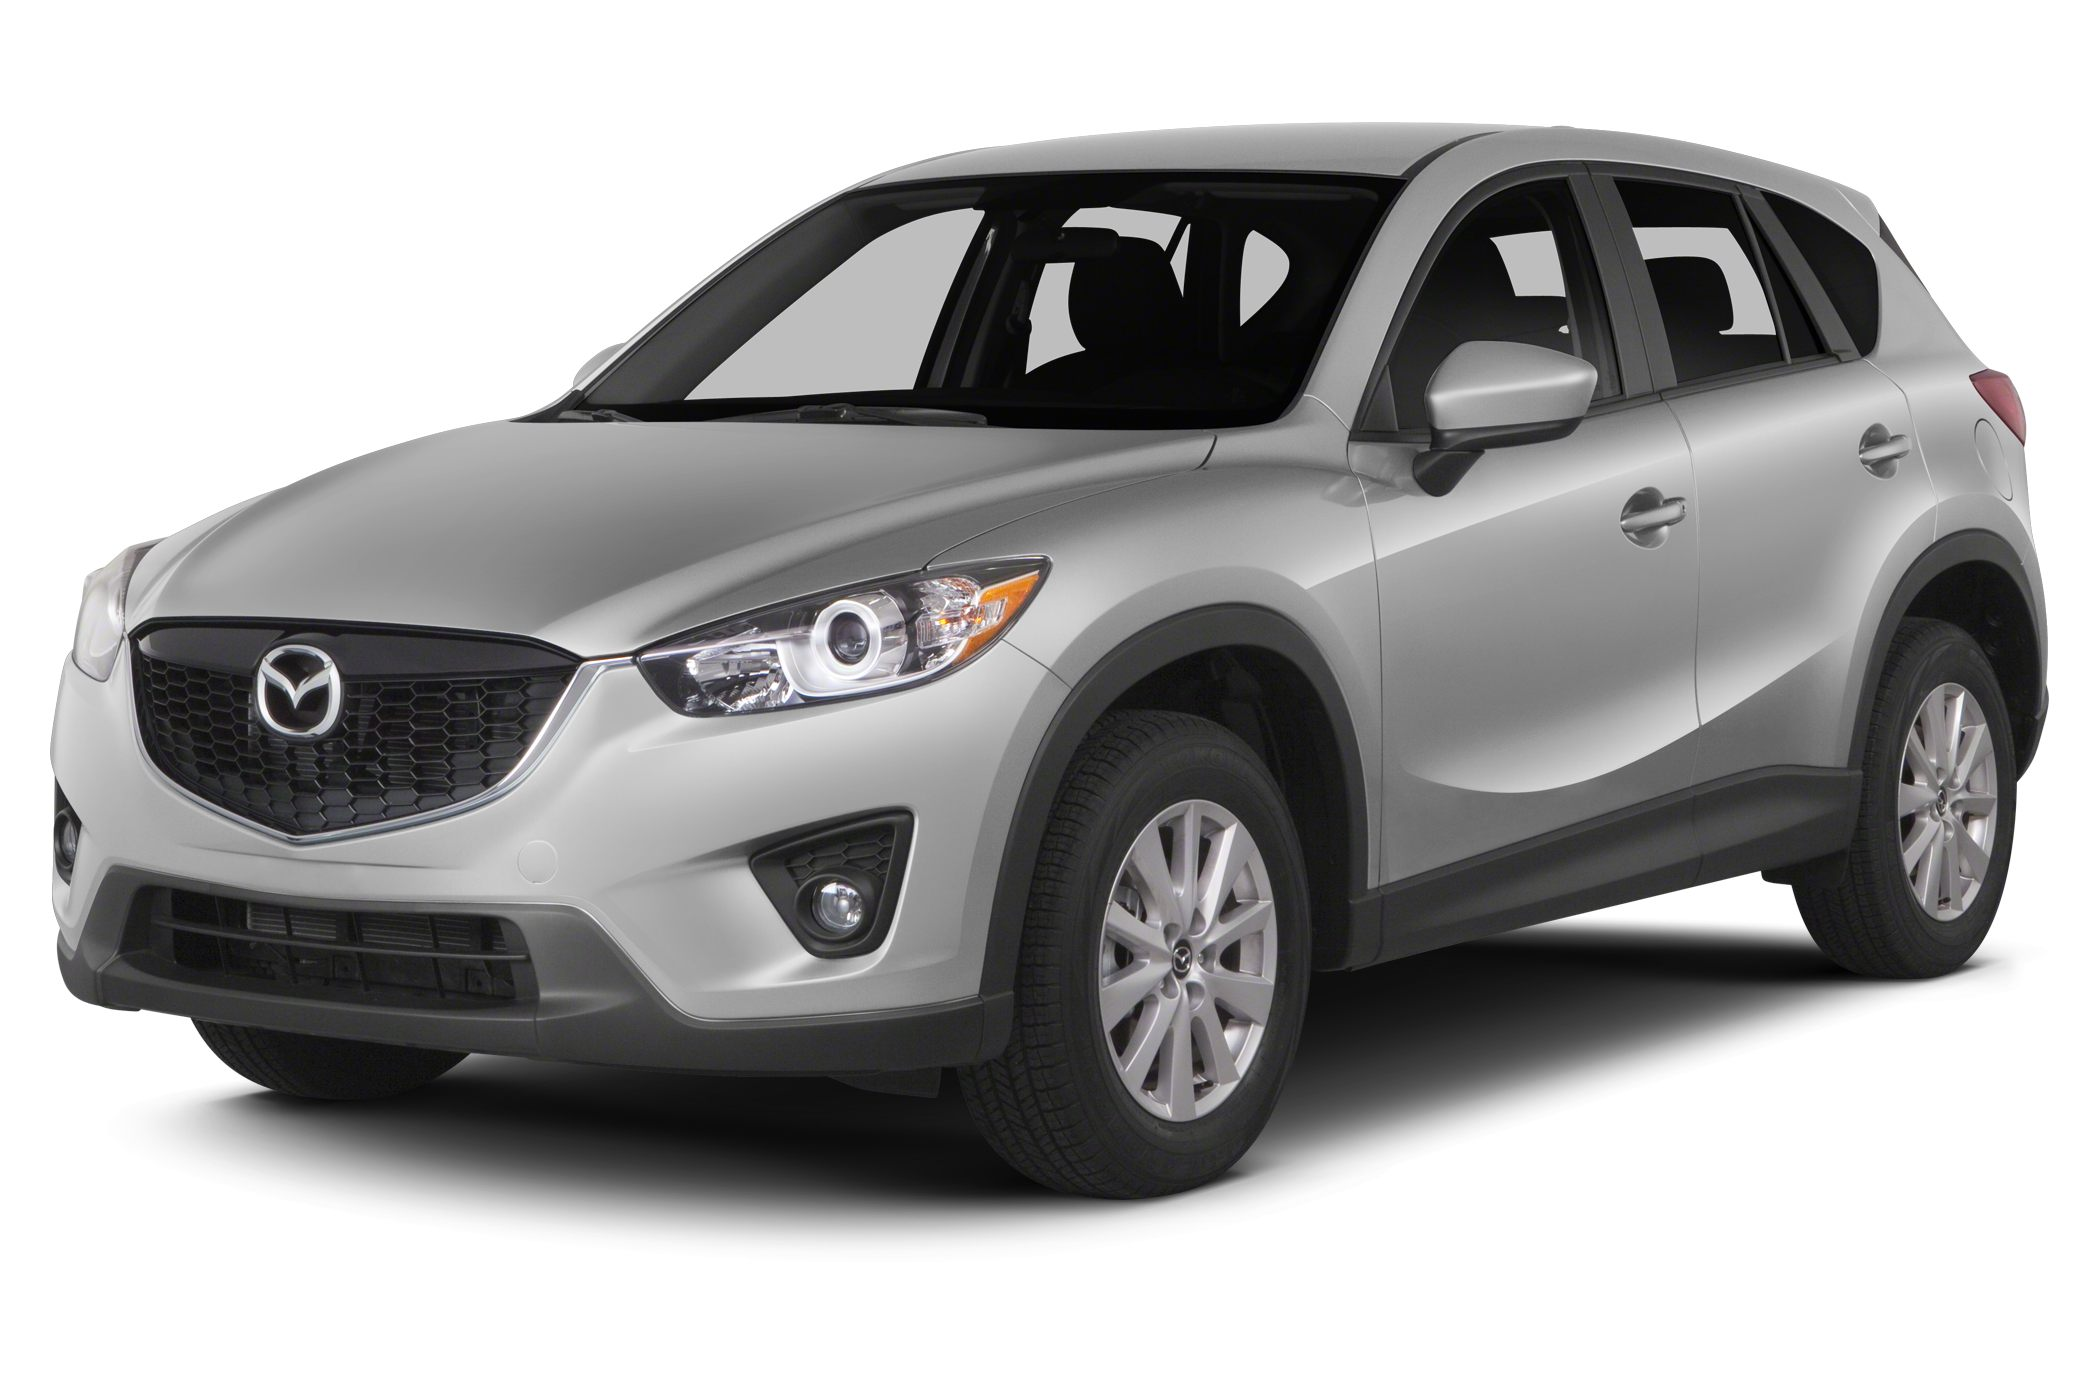 2013 Mazda CX-5 Sport SUV for sale in Overland Park for $18,500 with 21,970 miles.